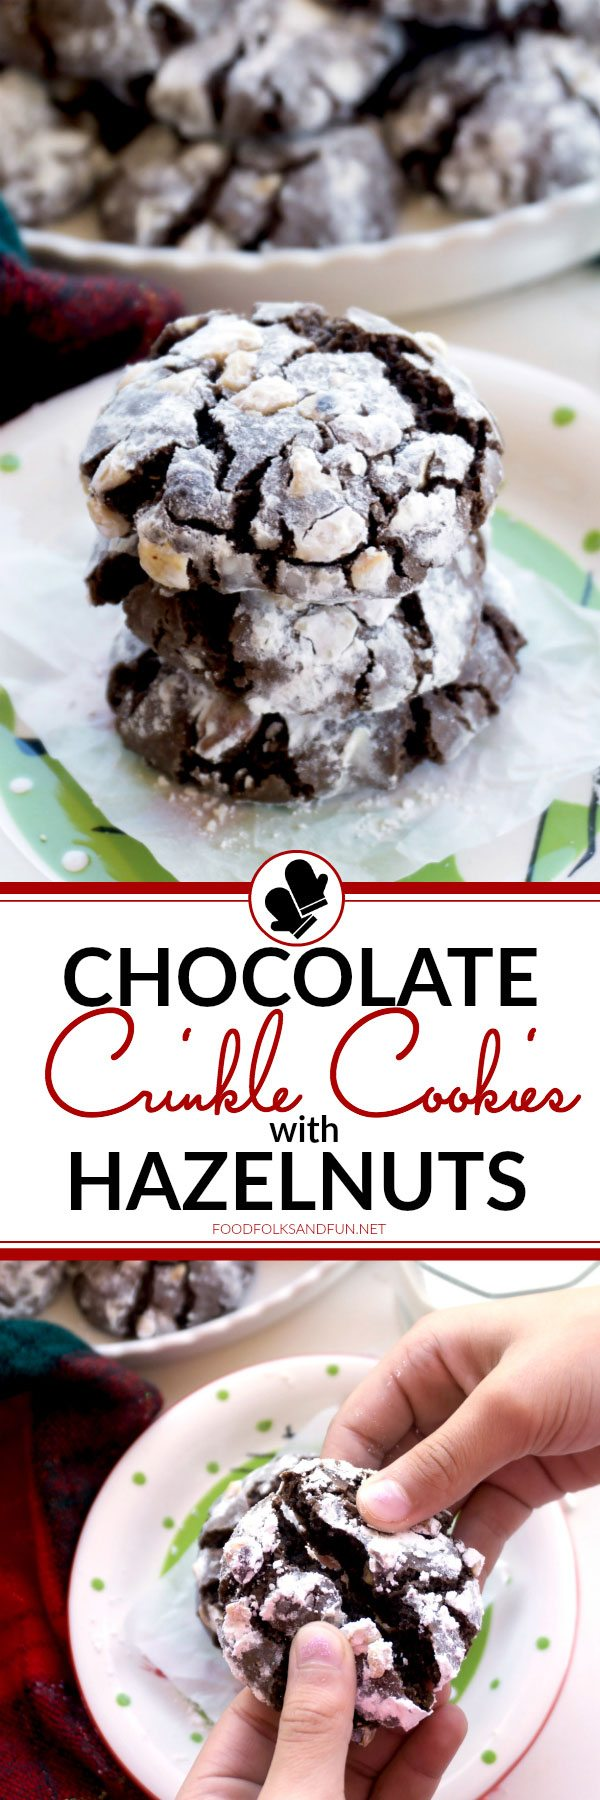 Chocolate Crinkle Cookies with Hazelnuts • Food, Folks and Fun